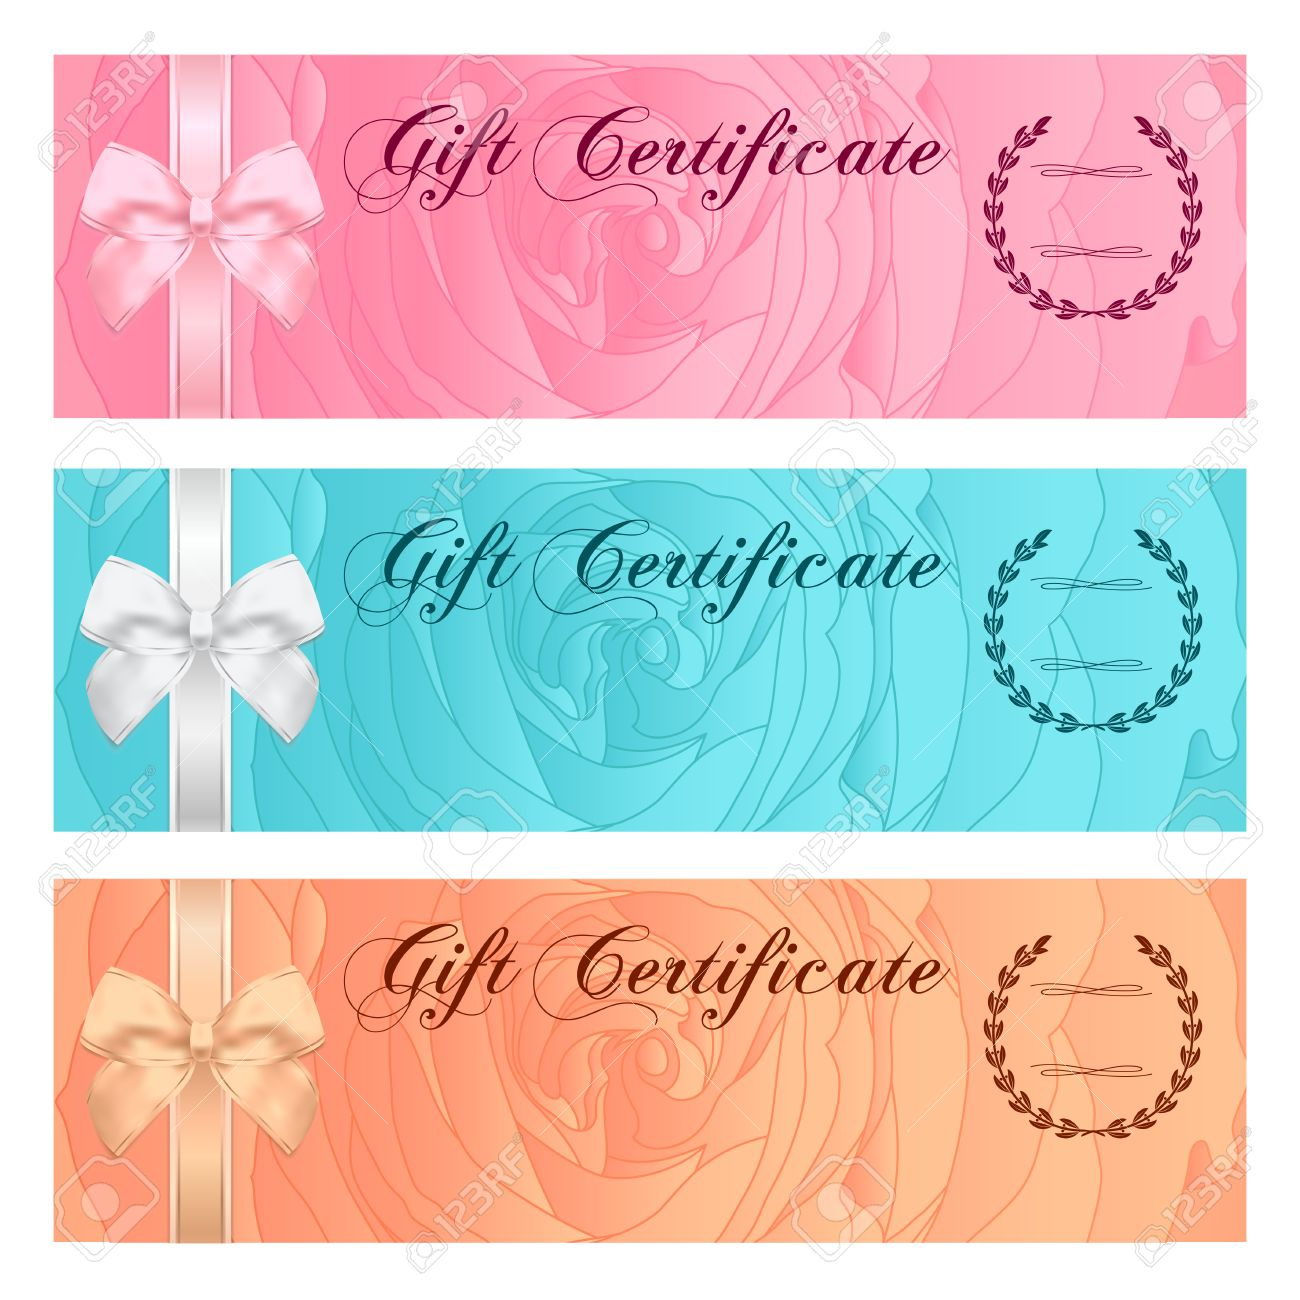 gift certificate voucher coupon reward gift card template gift certificate voucher coupon reward gift card template bow floral rose